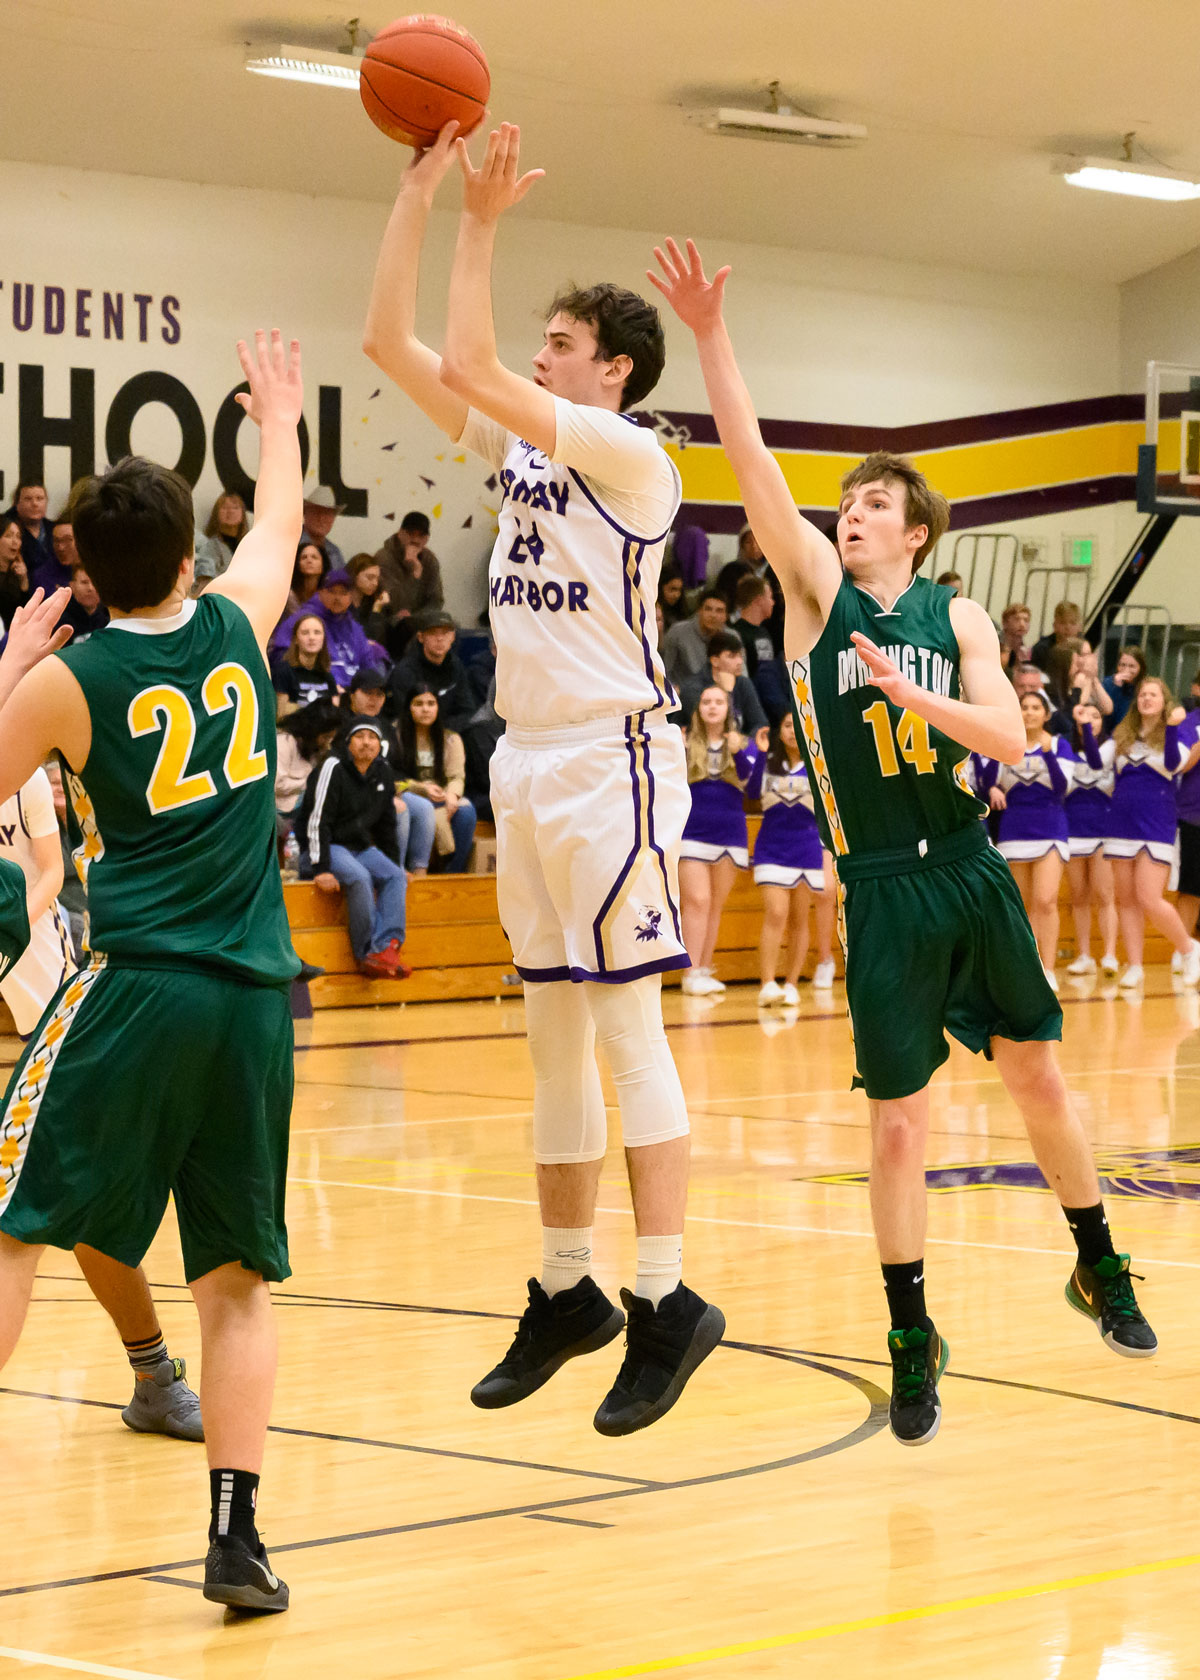 boys-basketball-1334.jpg